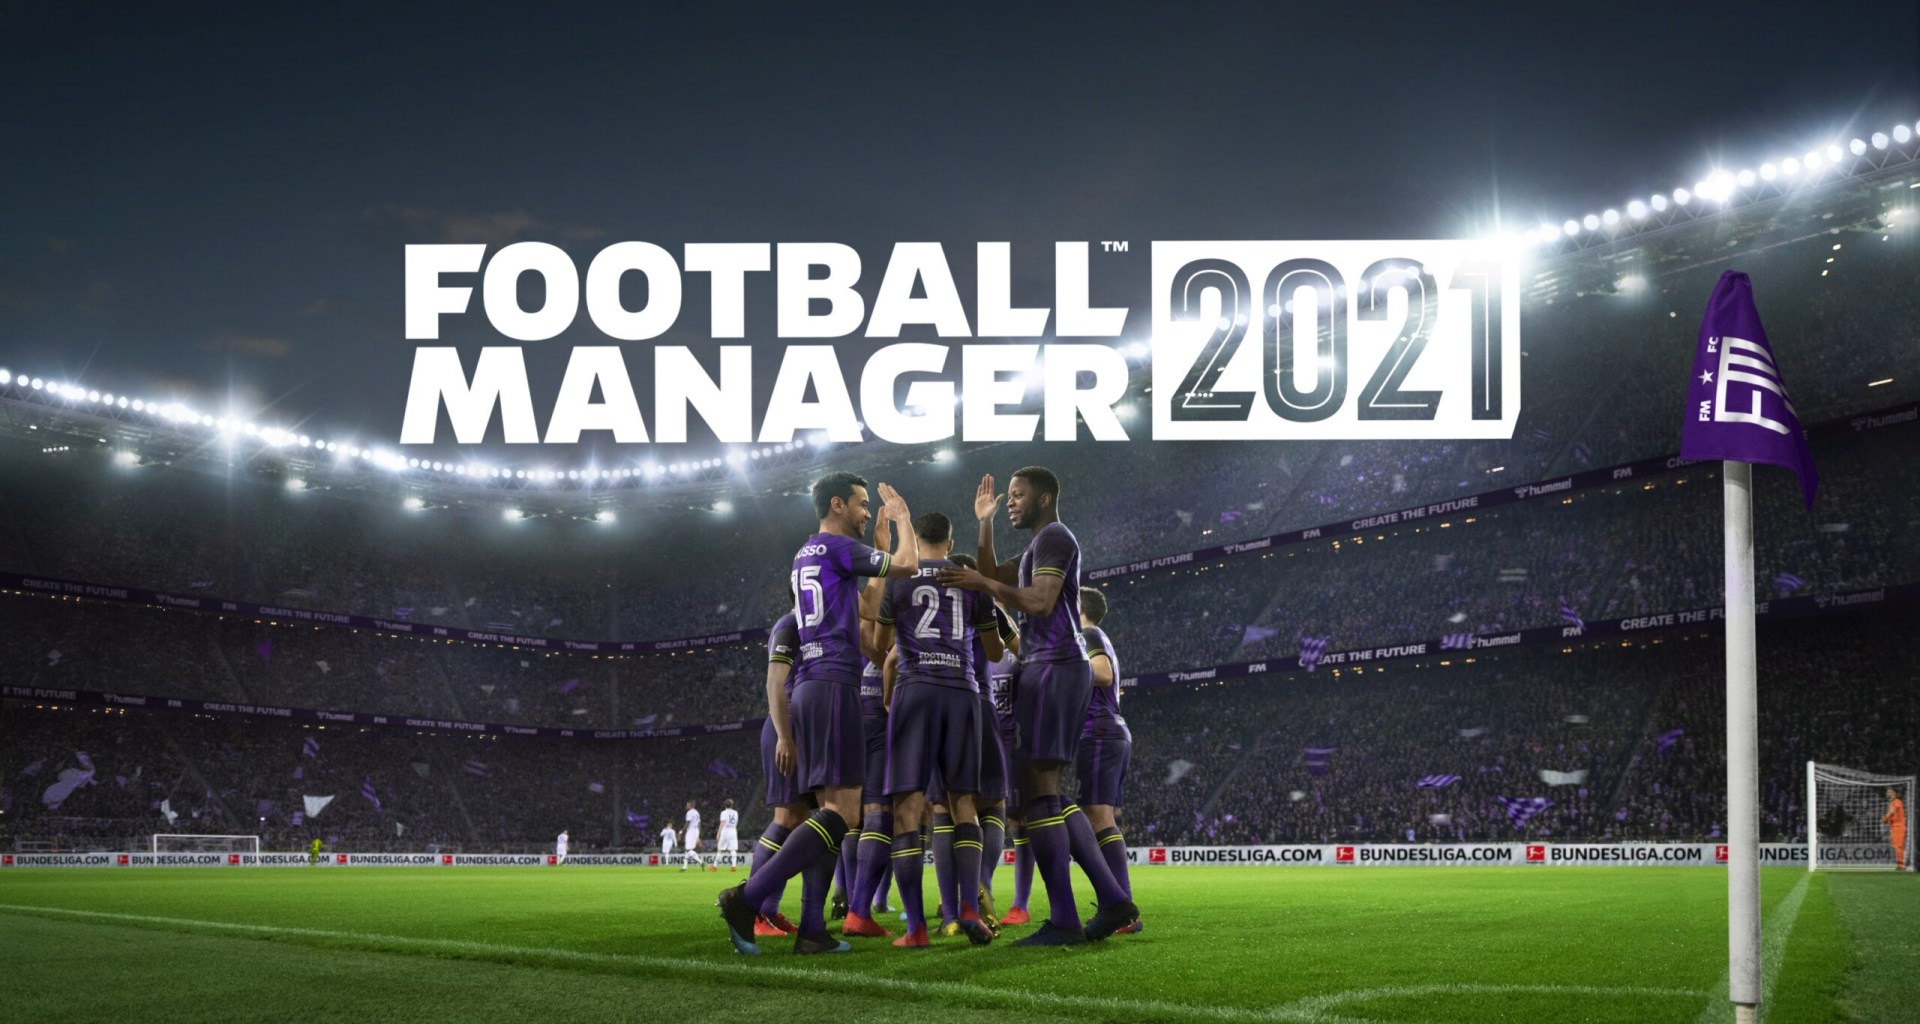 Football Manager 2021 Date Announced 01 Header scaled 2afb - Soccer Manager 2021 Mod Apk V1.2.1 (English Version)